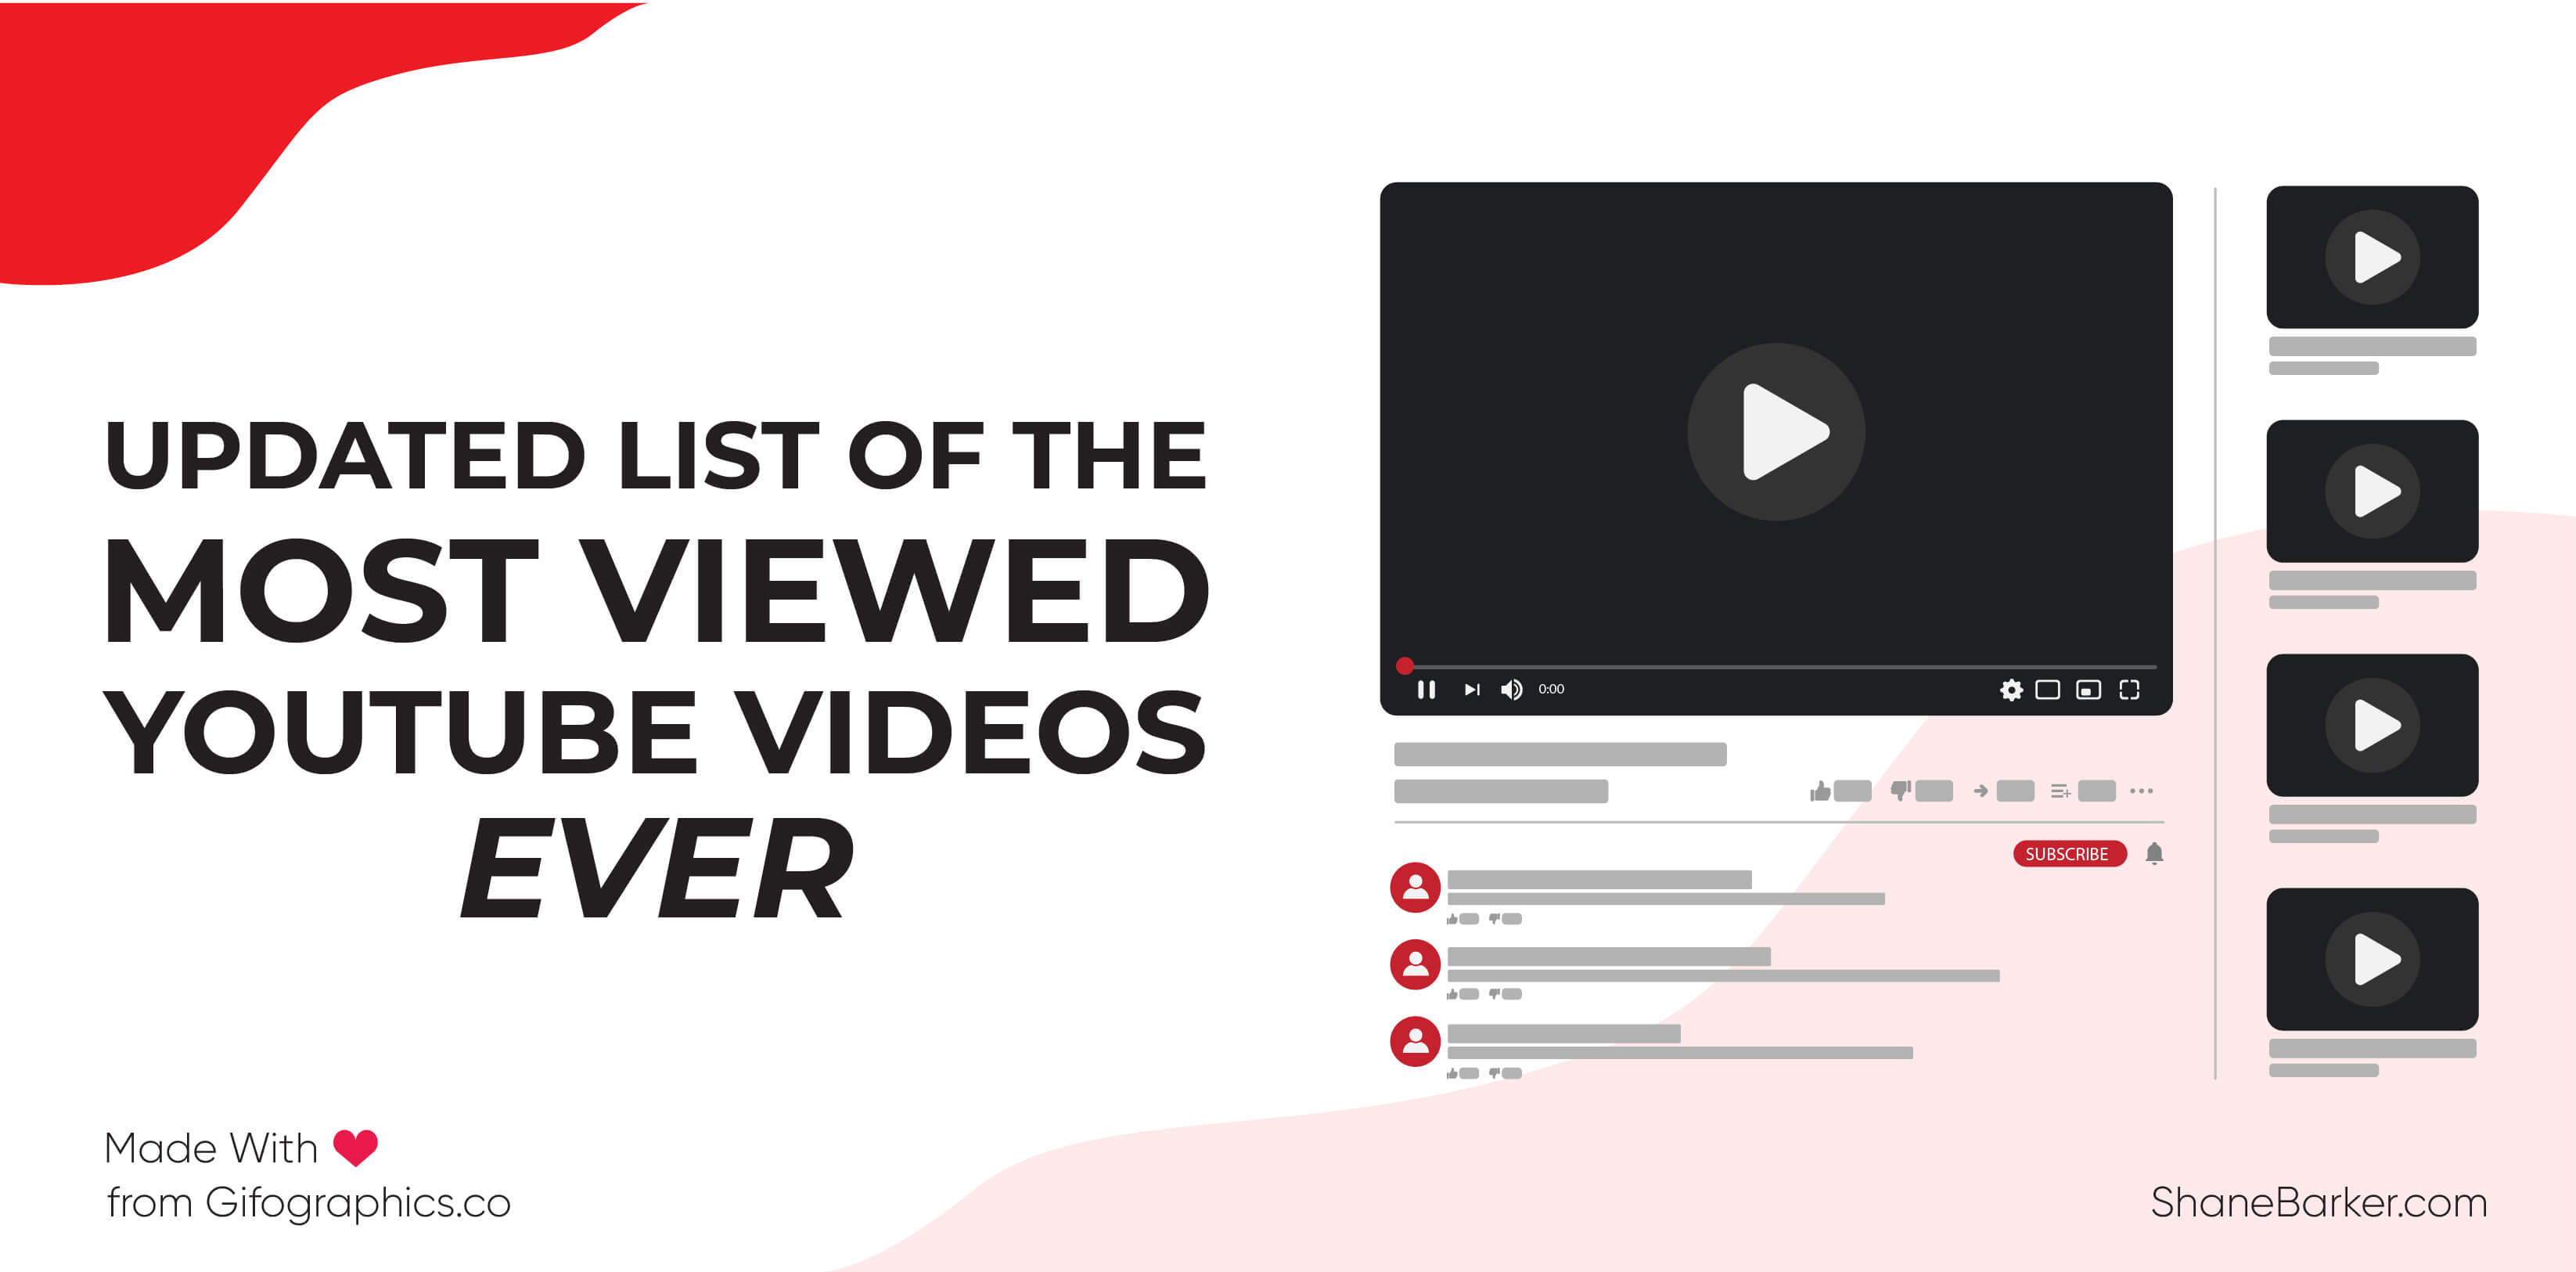 Updated List Of The Most Viewed Youtube Videos Ever Aug 2019 Shane Barker